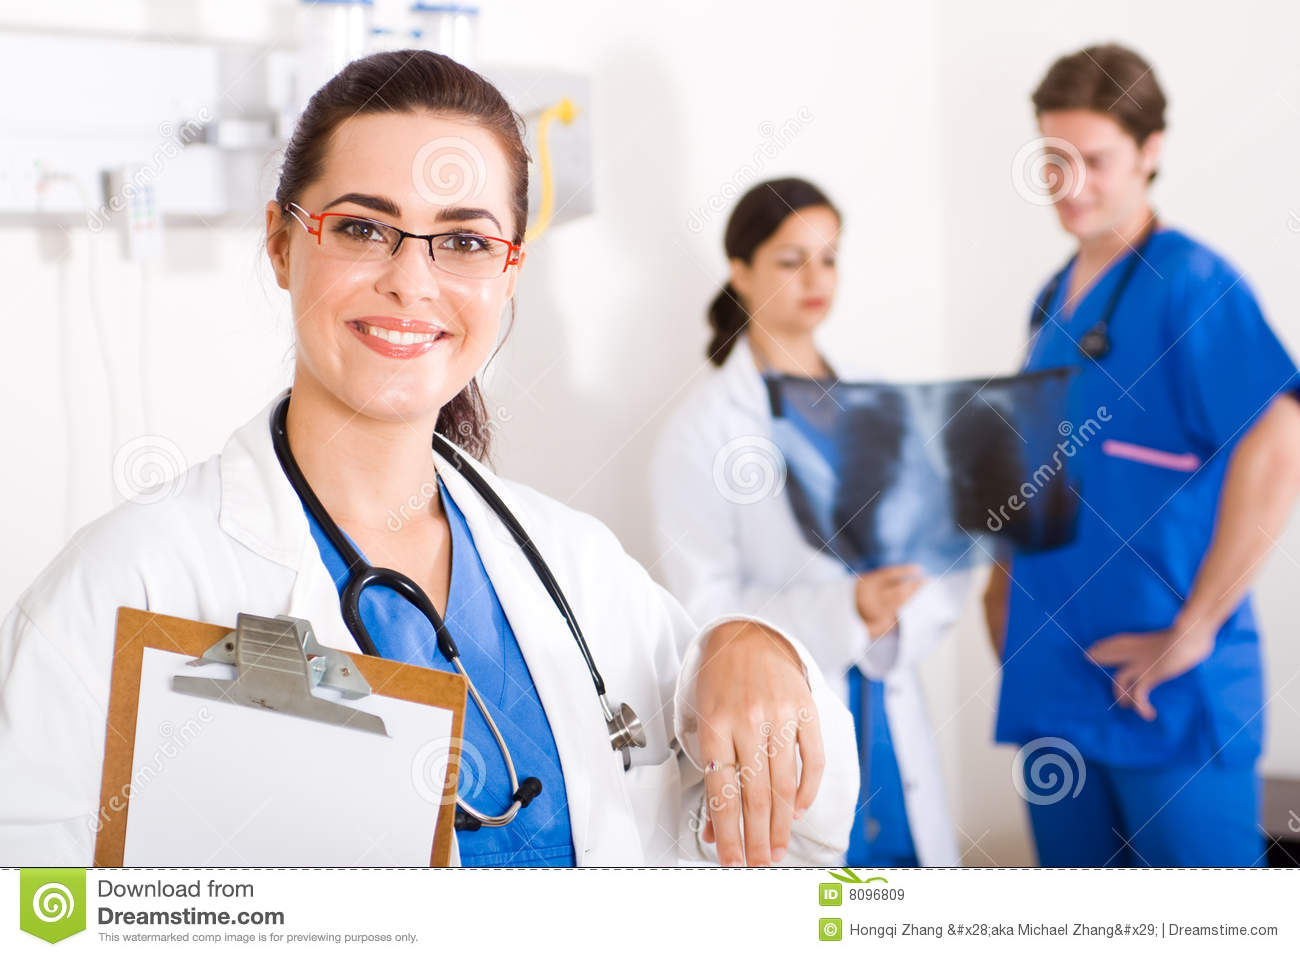 Medical workers